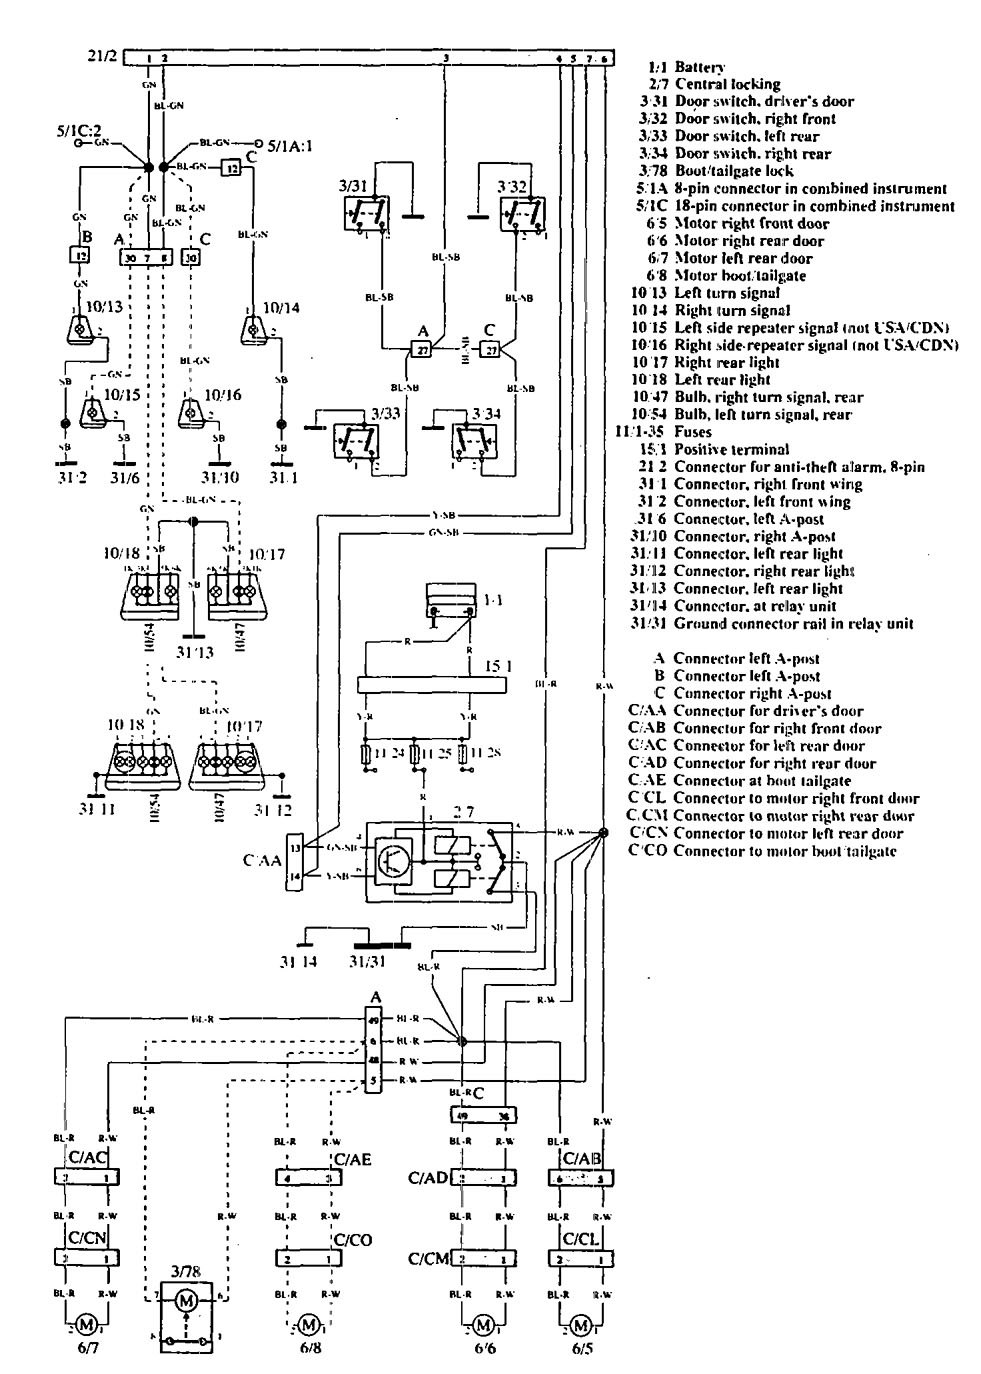 1992 volvo 960 wiring diagram   29 wiring diagram images